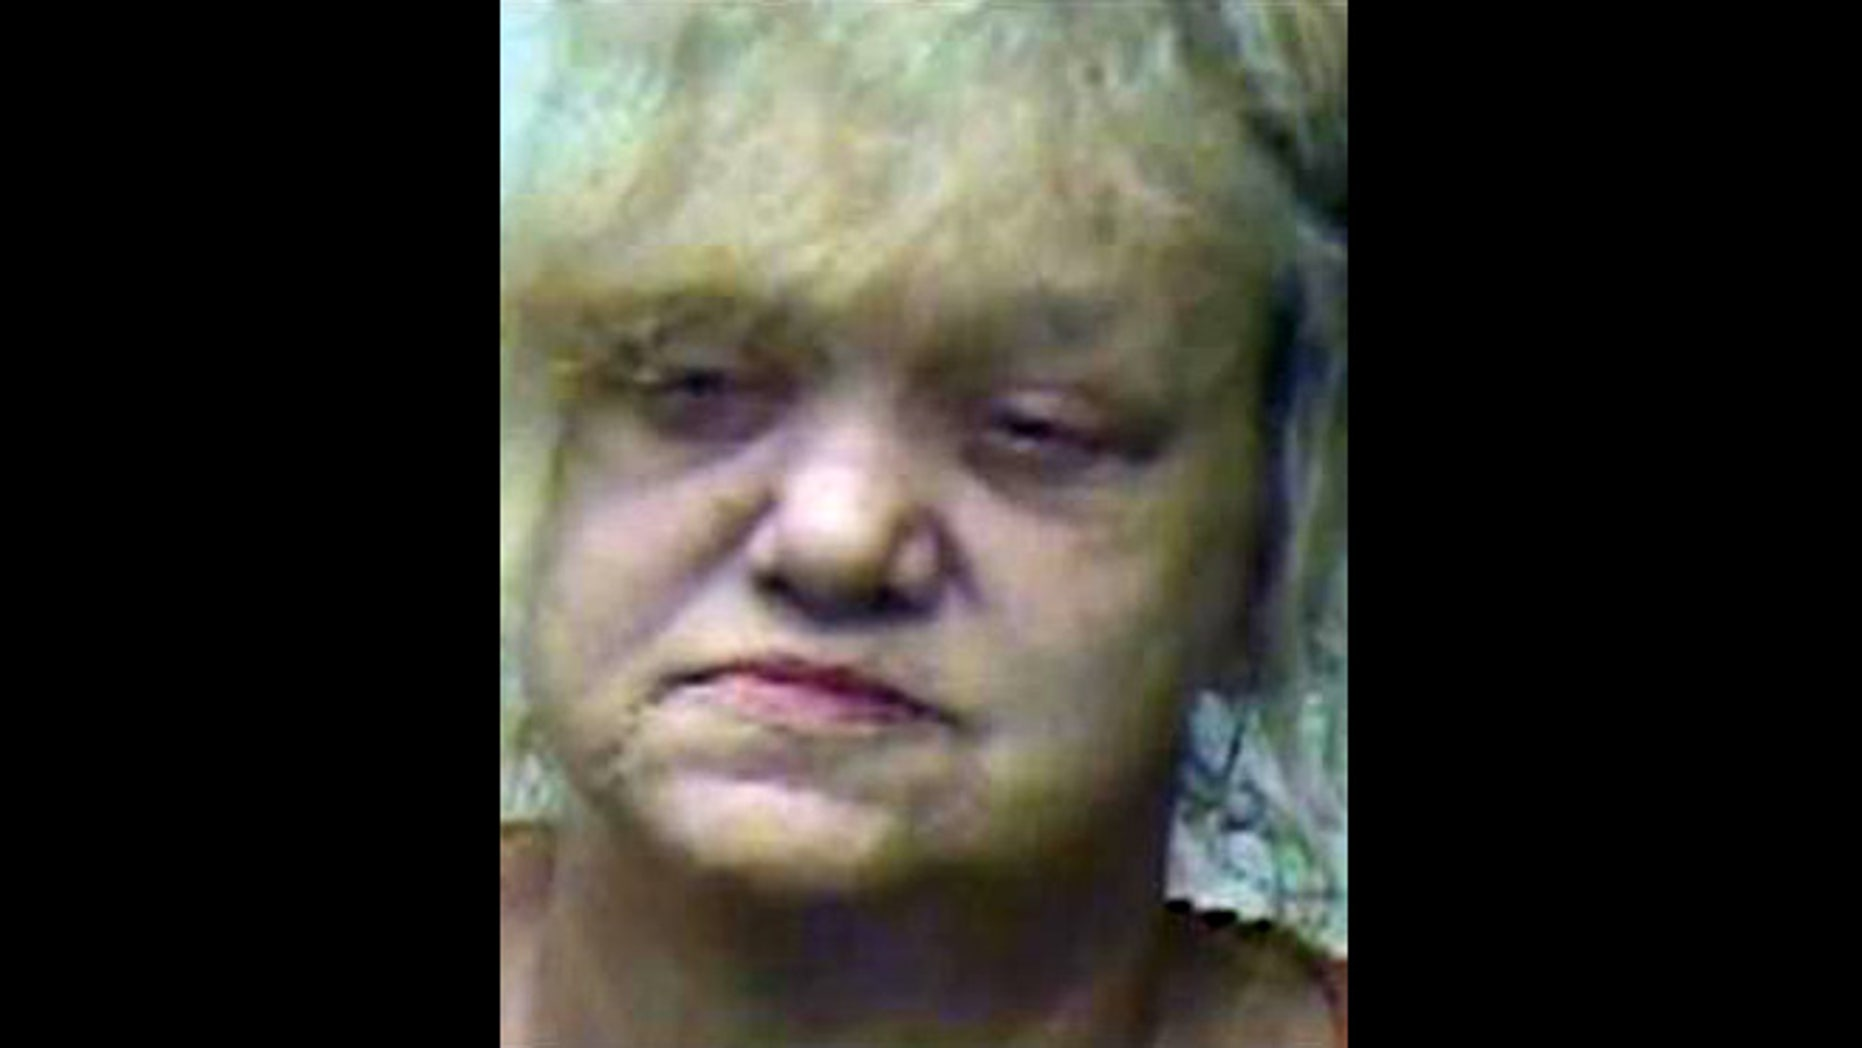 Sandy Hatte, 60, was arrested in connection with the abduction.